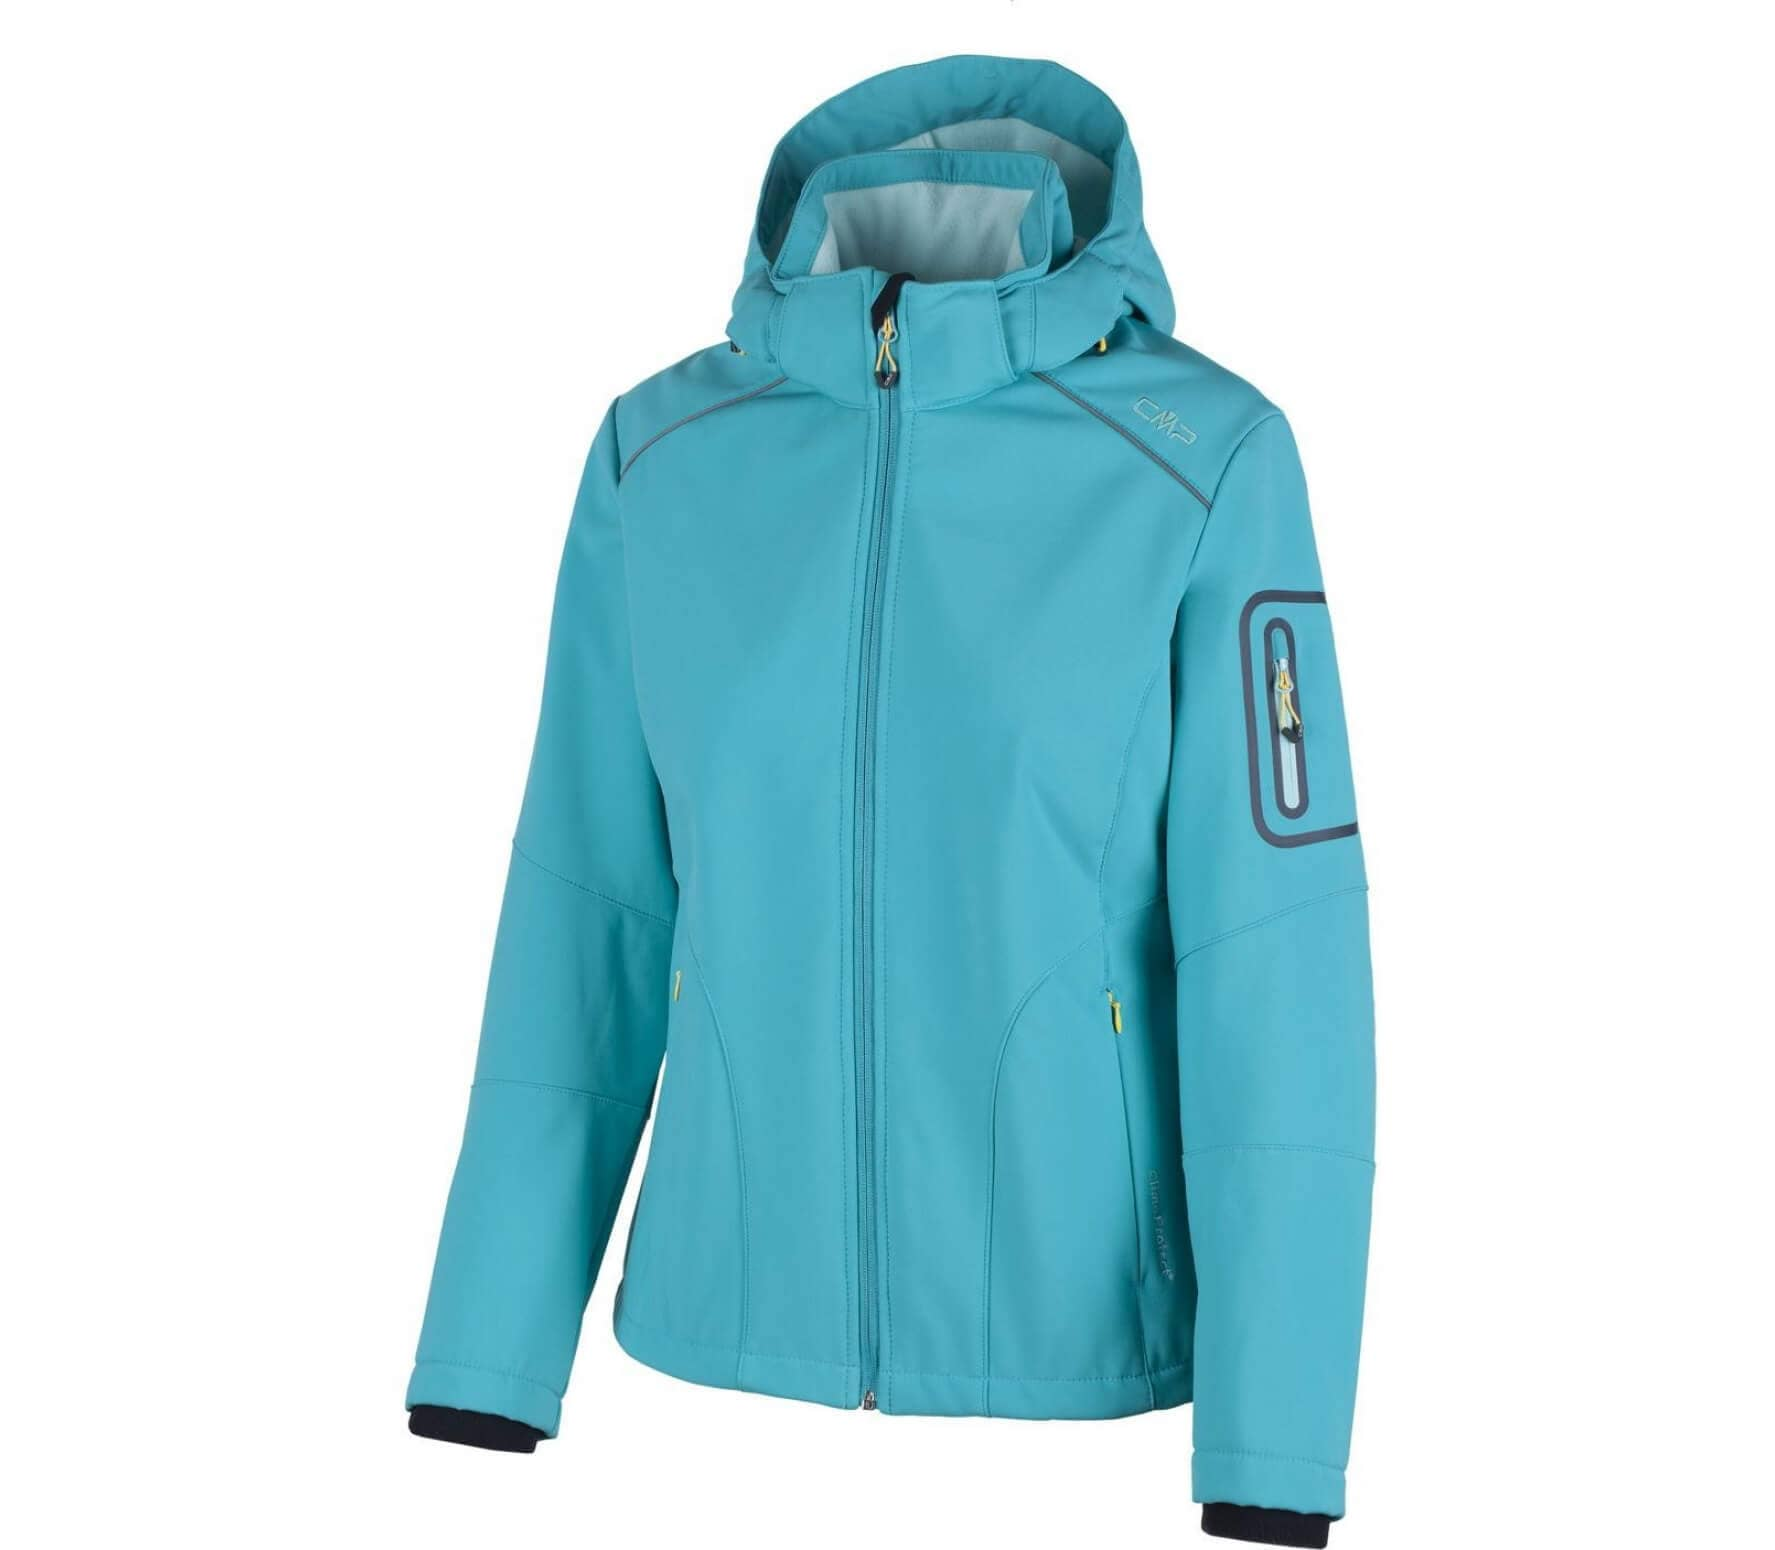 CMP - Zip Hood women s soft shell jacket (blue) - buy it at the ... 0ab73c36bf